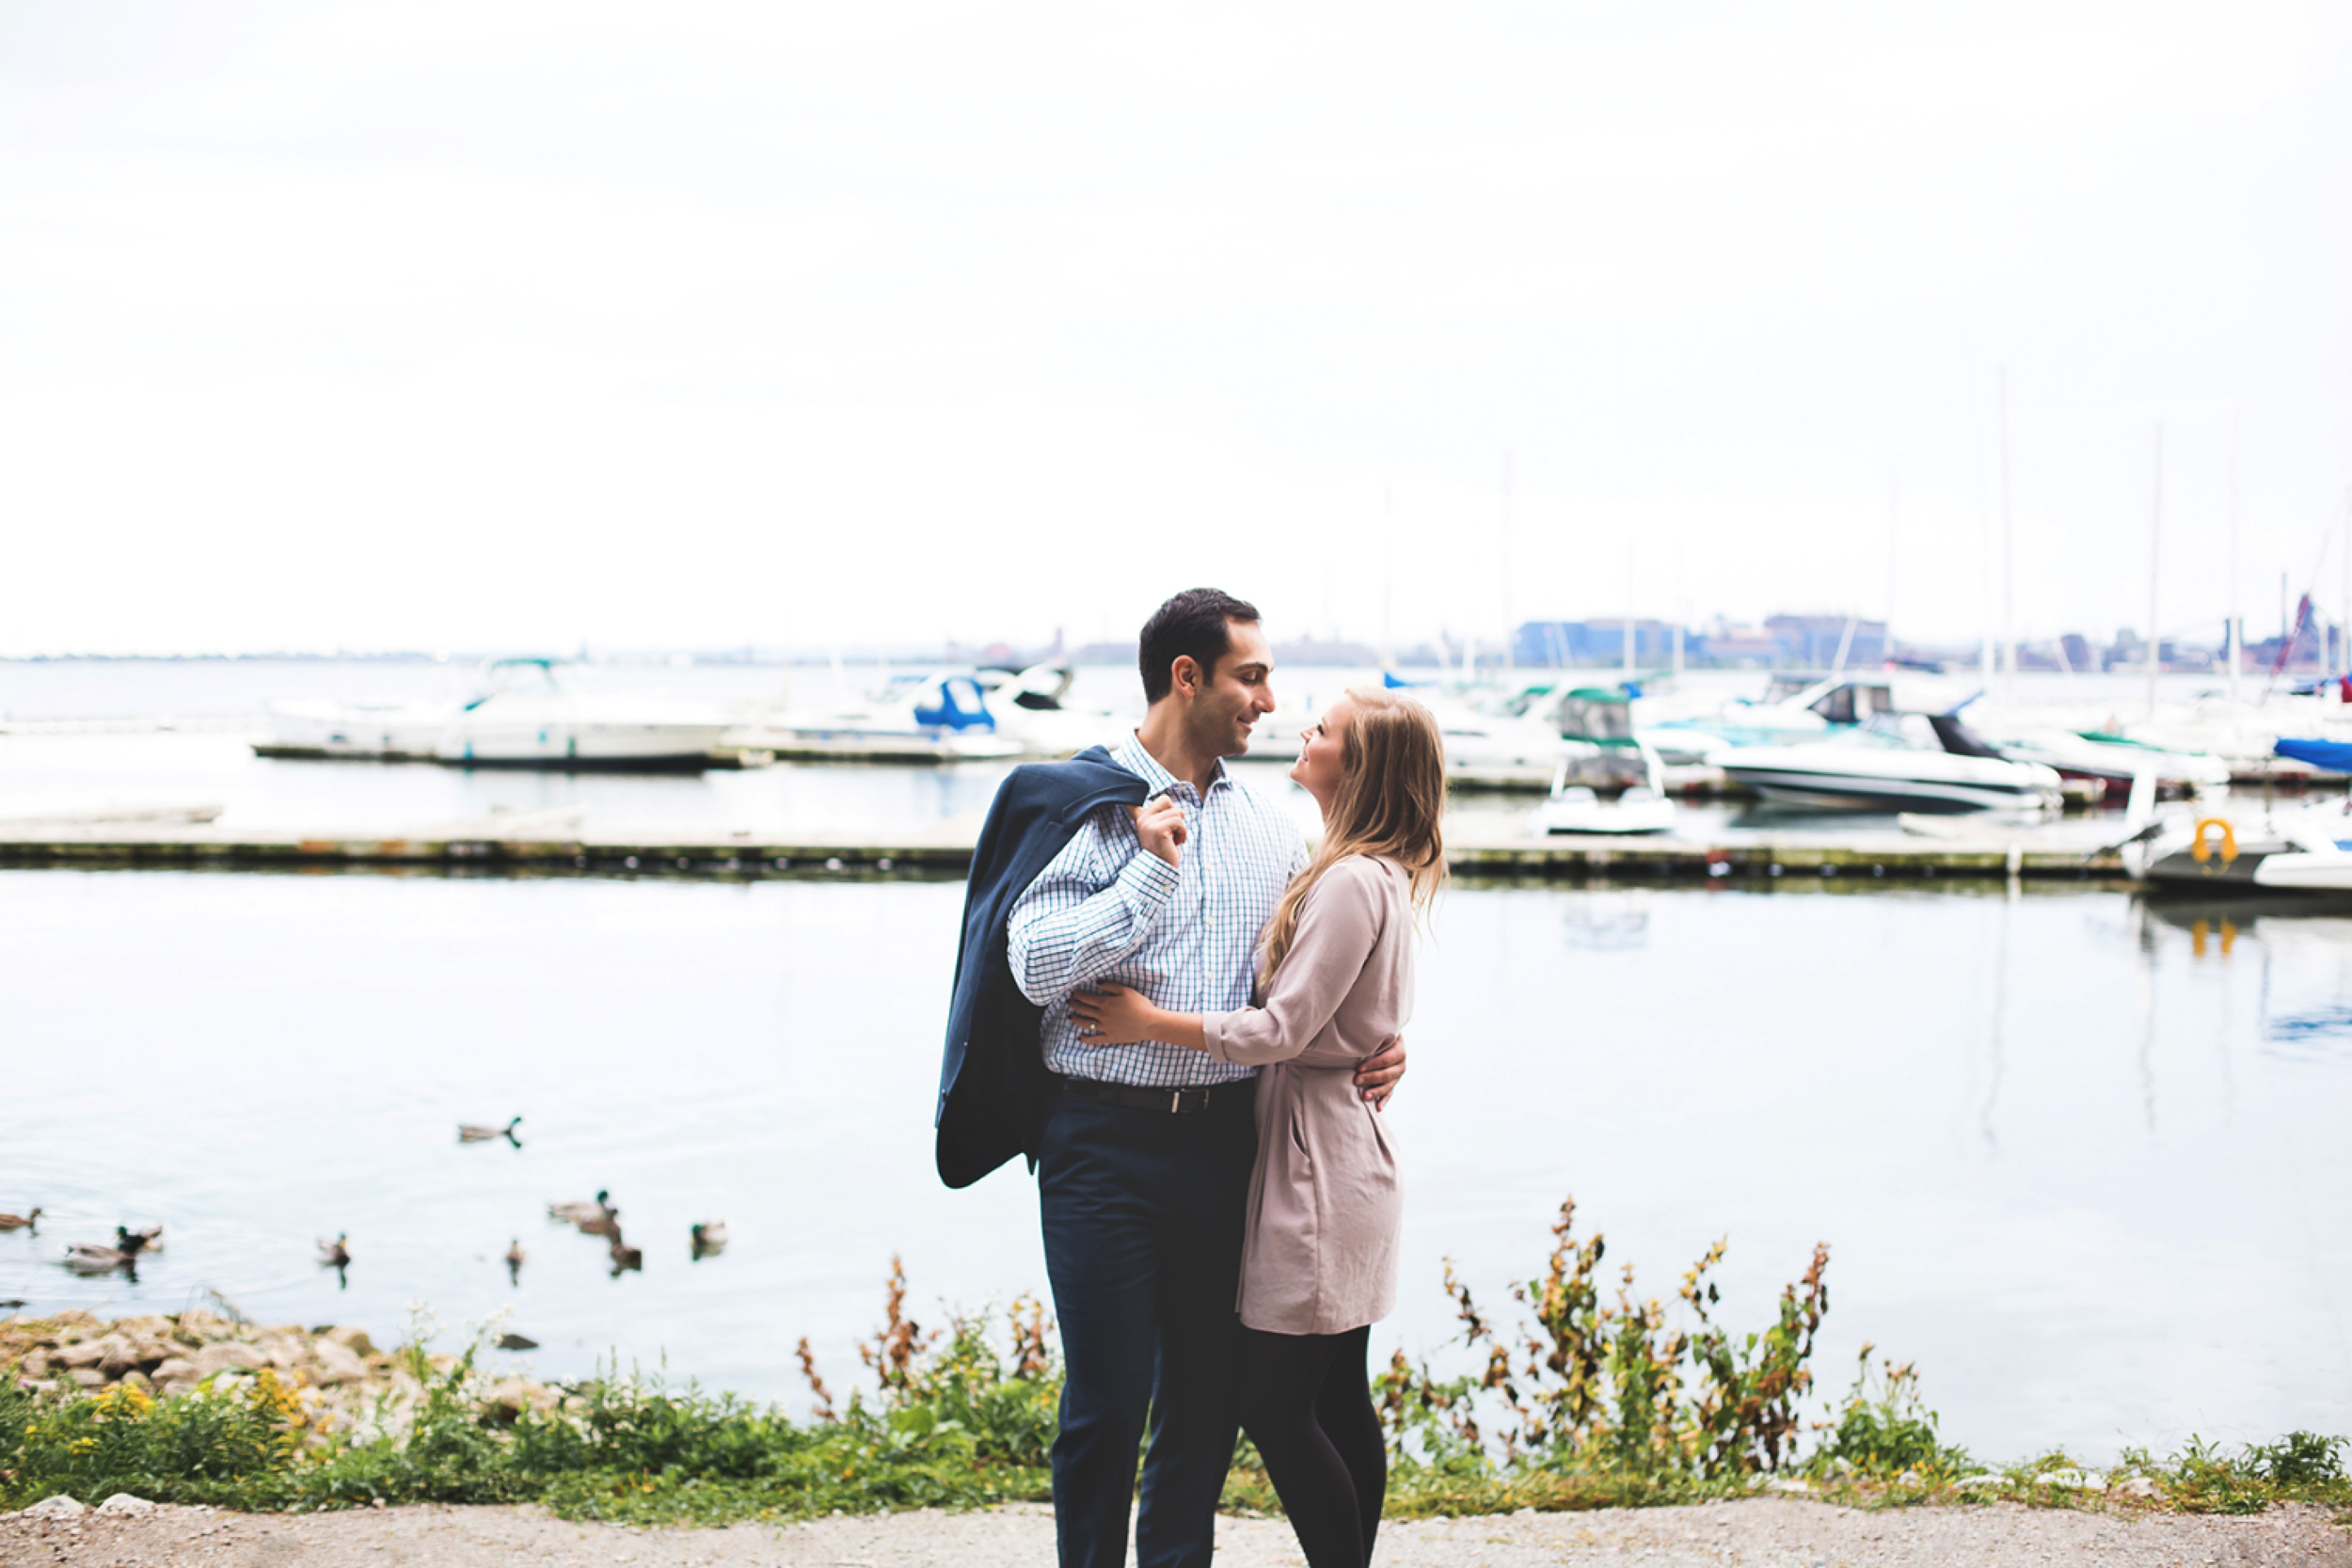 Engagement-Session-Hamilton-Burlington-Oakville-Niagara-Toronto-Wedding-Photographer-Engaged-Photography-Waterfront-Engaged-Golden-Hour-Moments-by-Lauren-Photo-Image-12.png